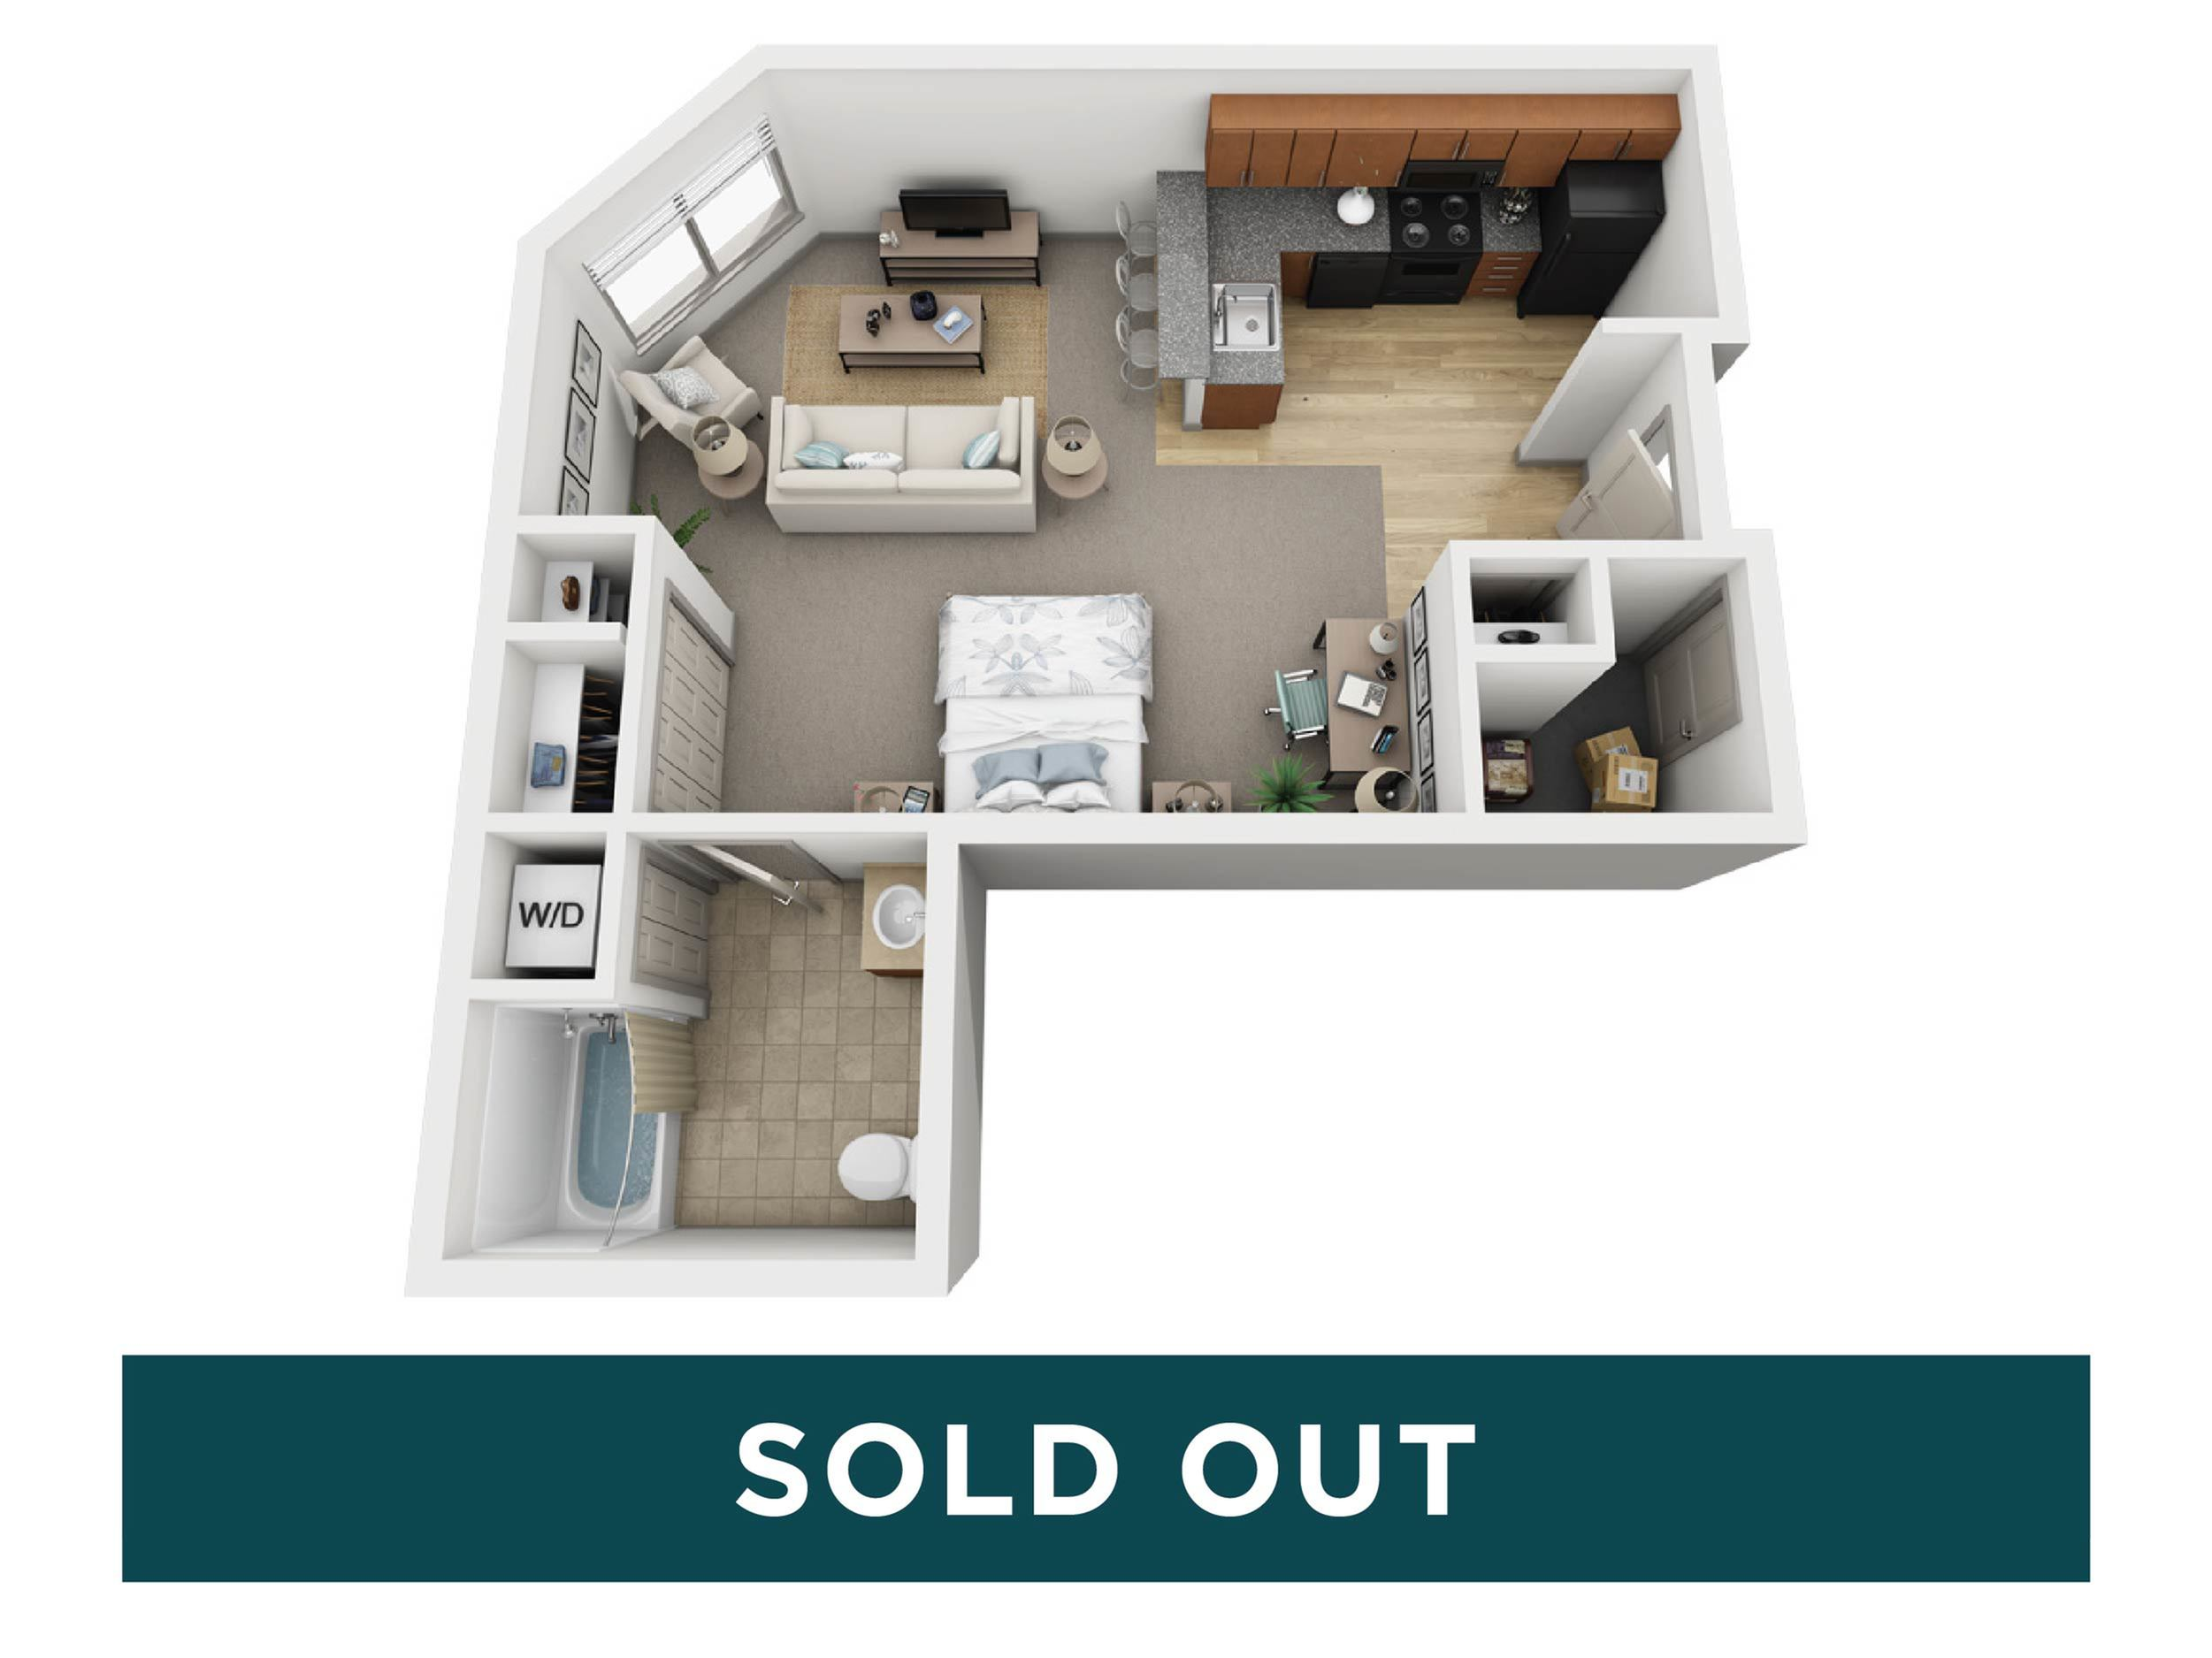 Studio C - sold out